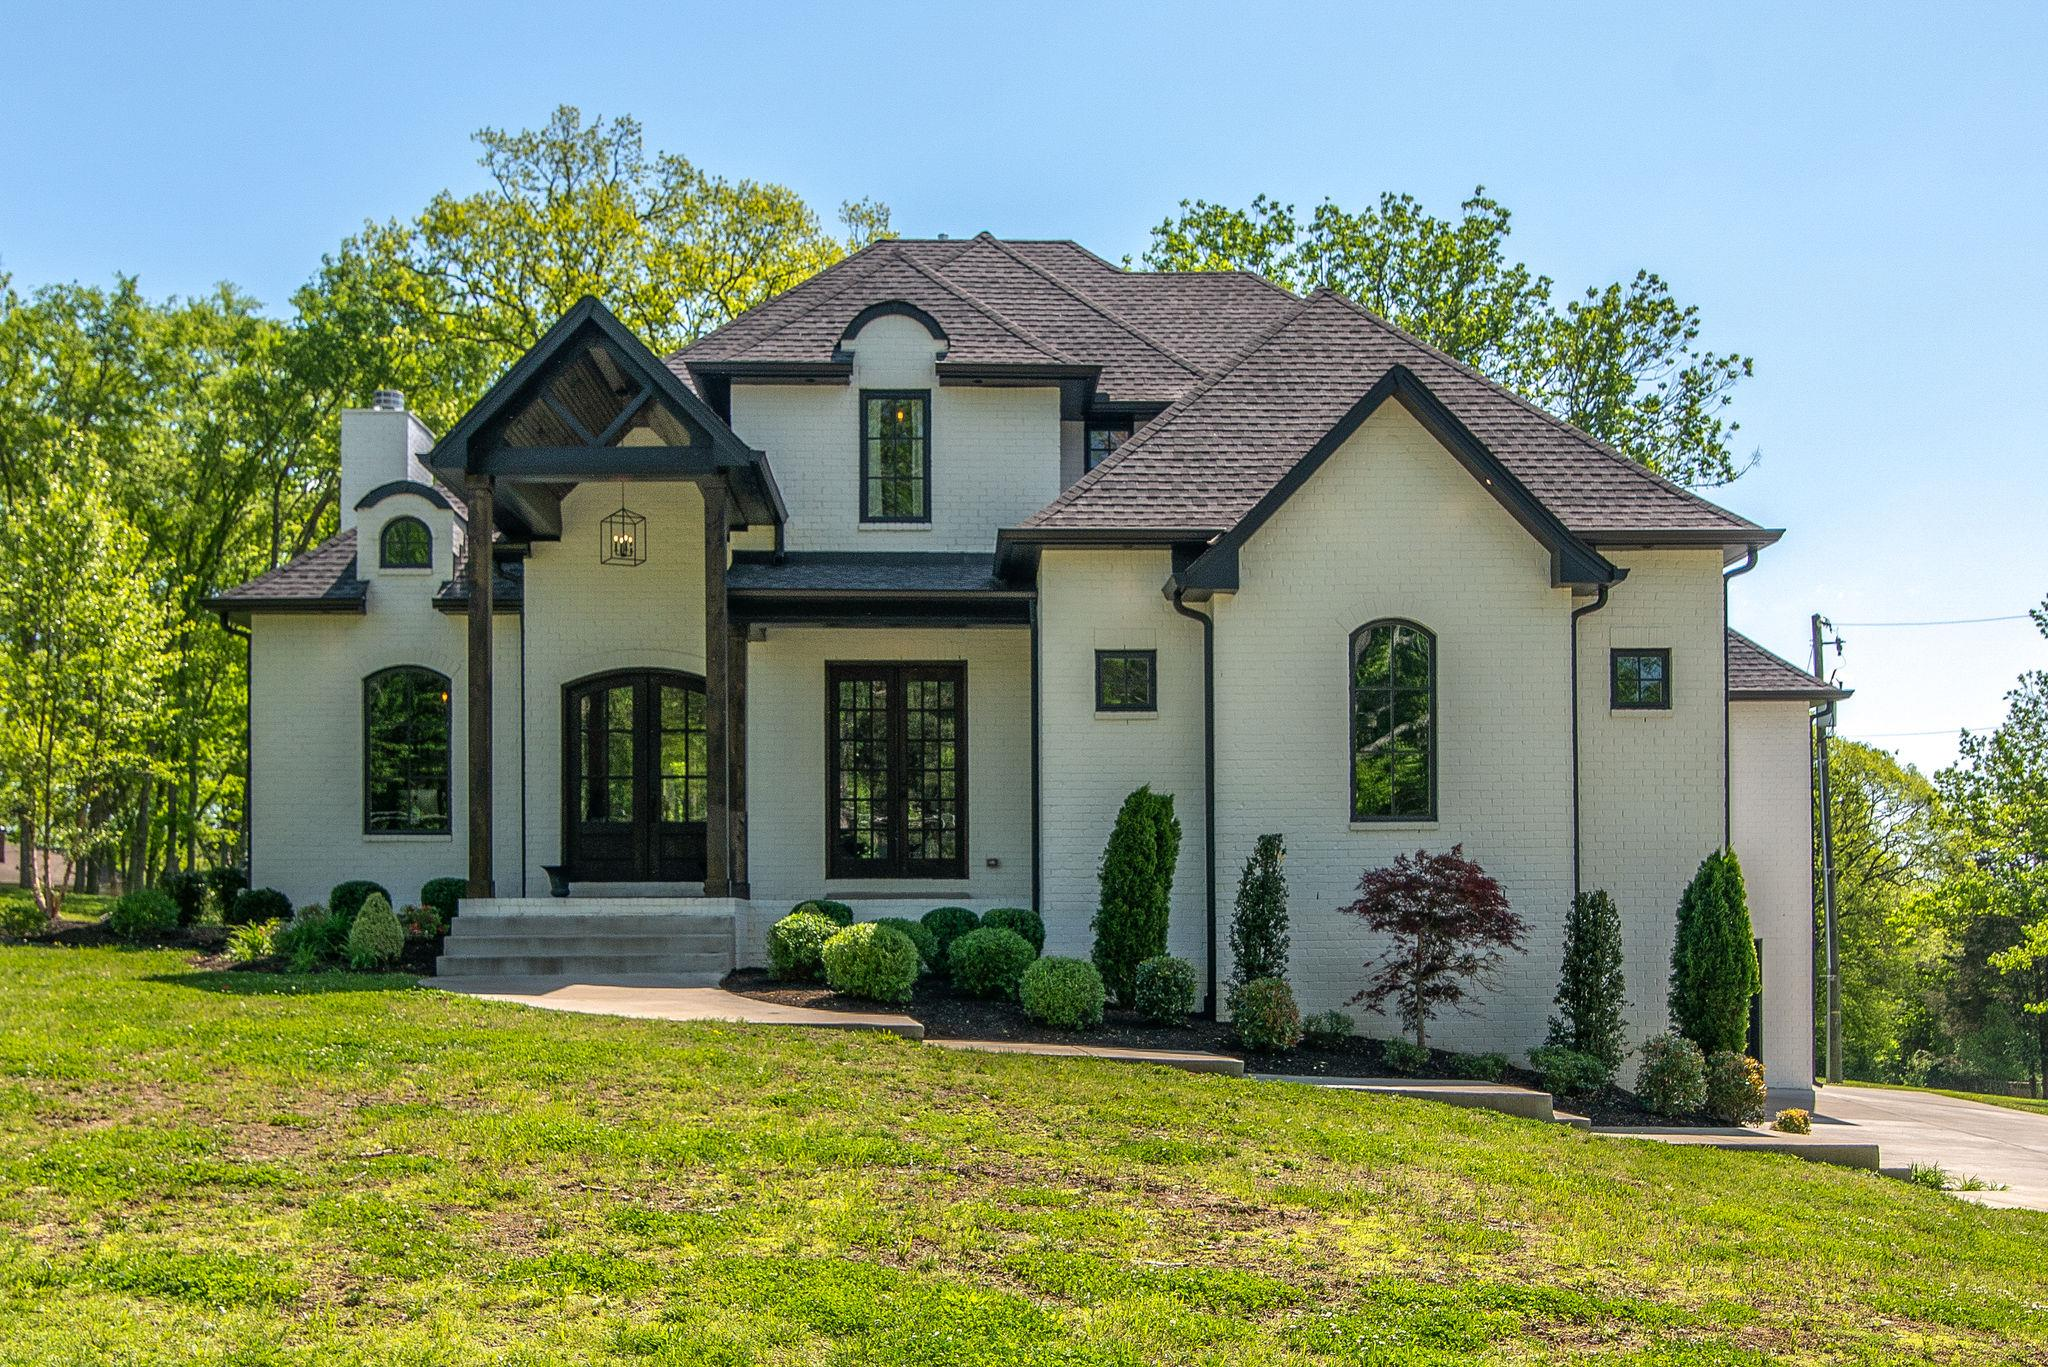 103 Cherry Hill Dr., Hendersonville, Tennessee